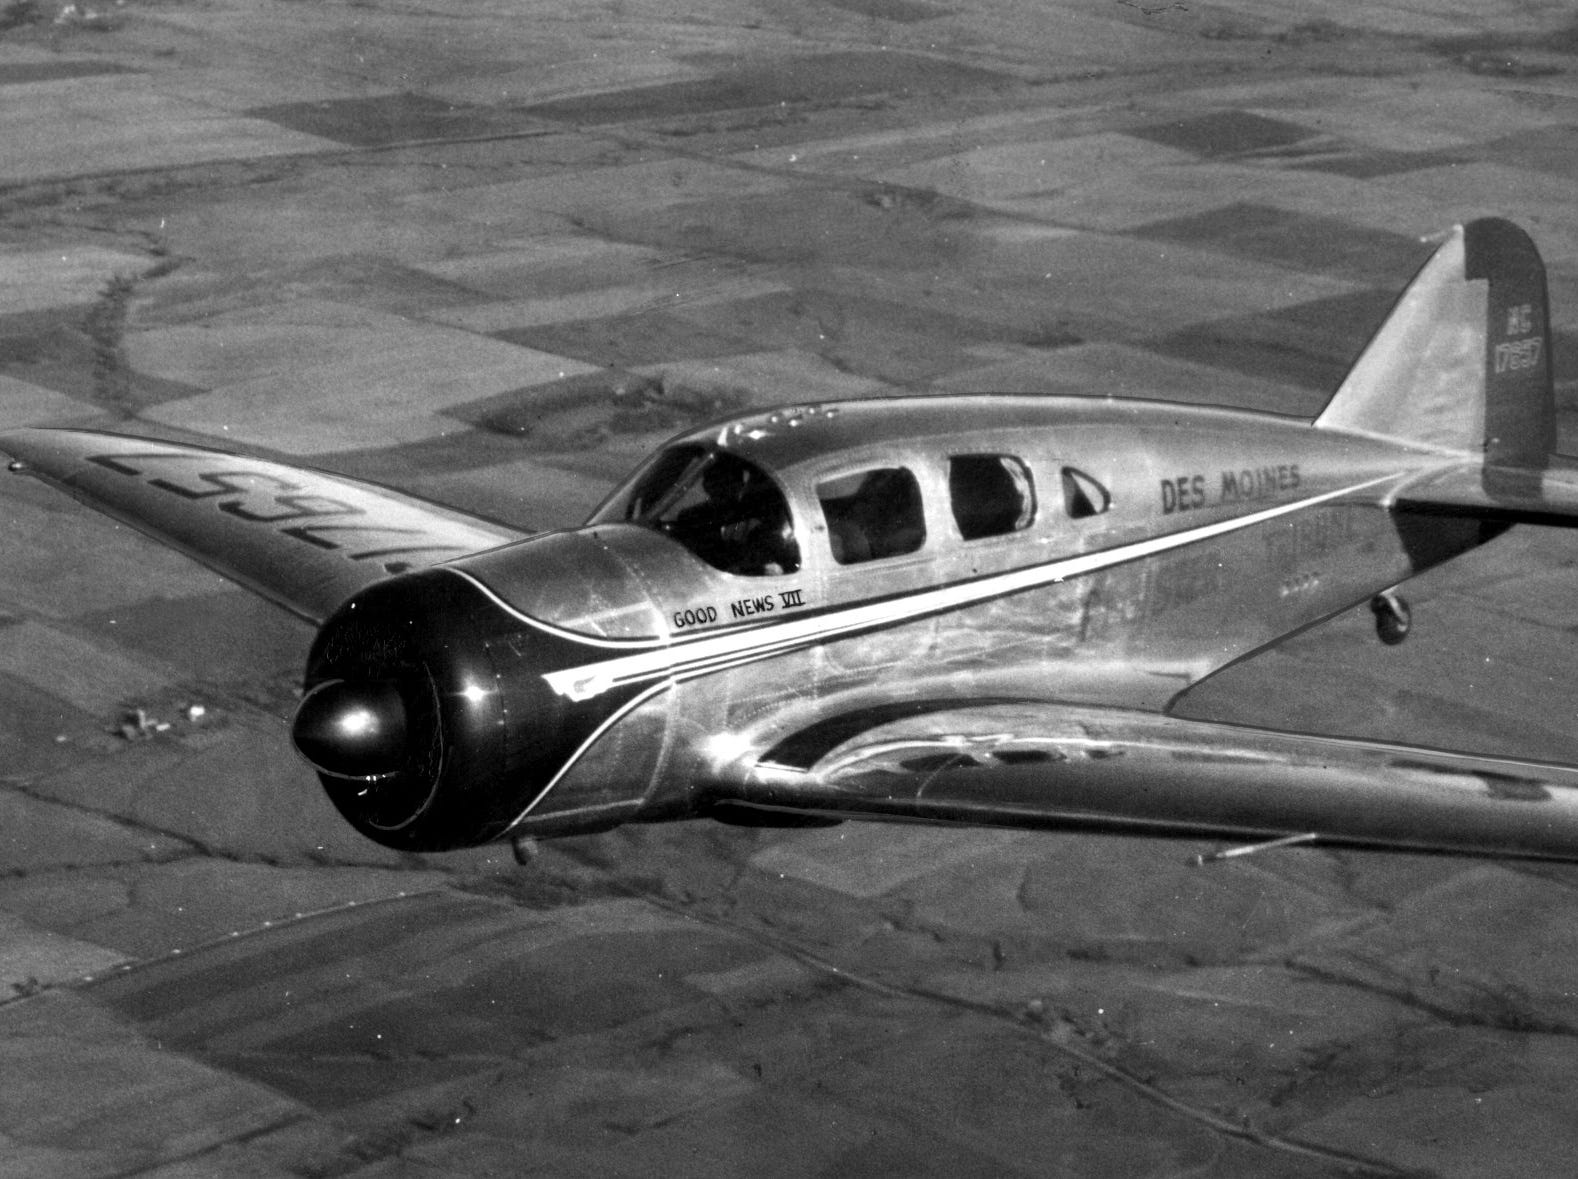 The Register and Tribune's new all-metal airplane, Good News VII, in flight over Des Moines.